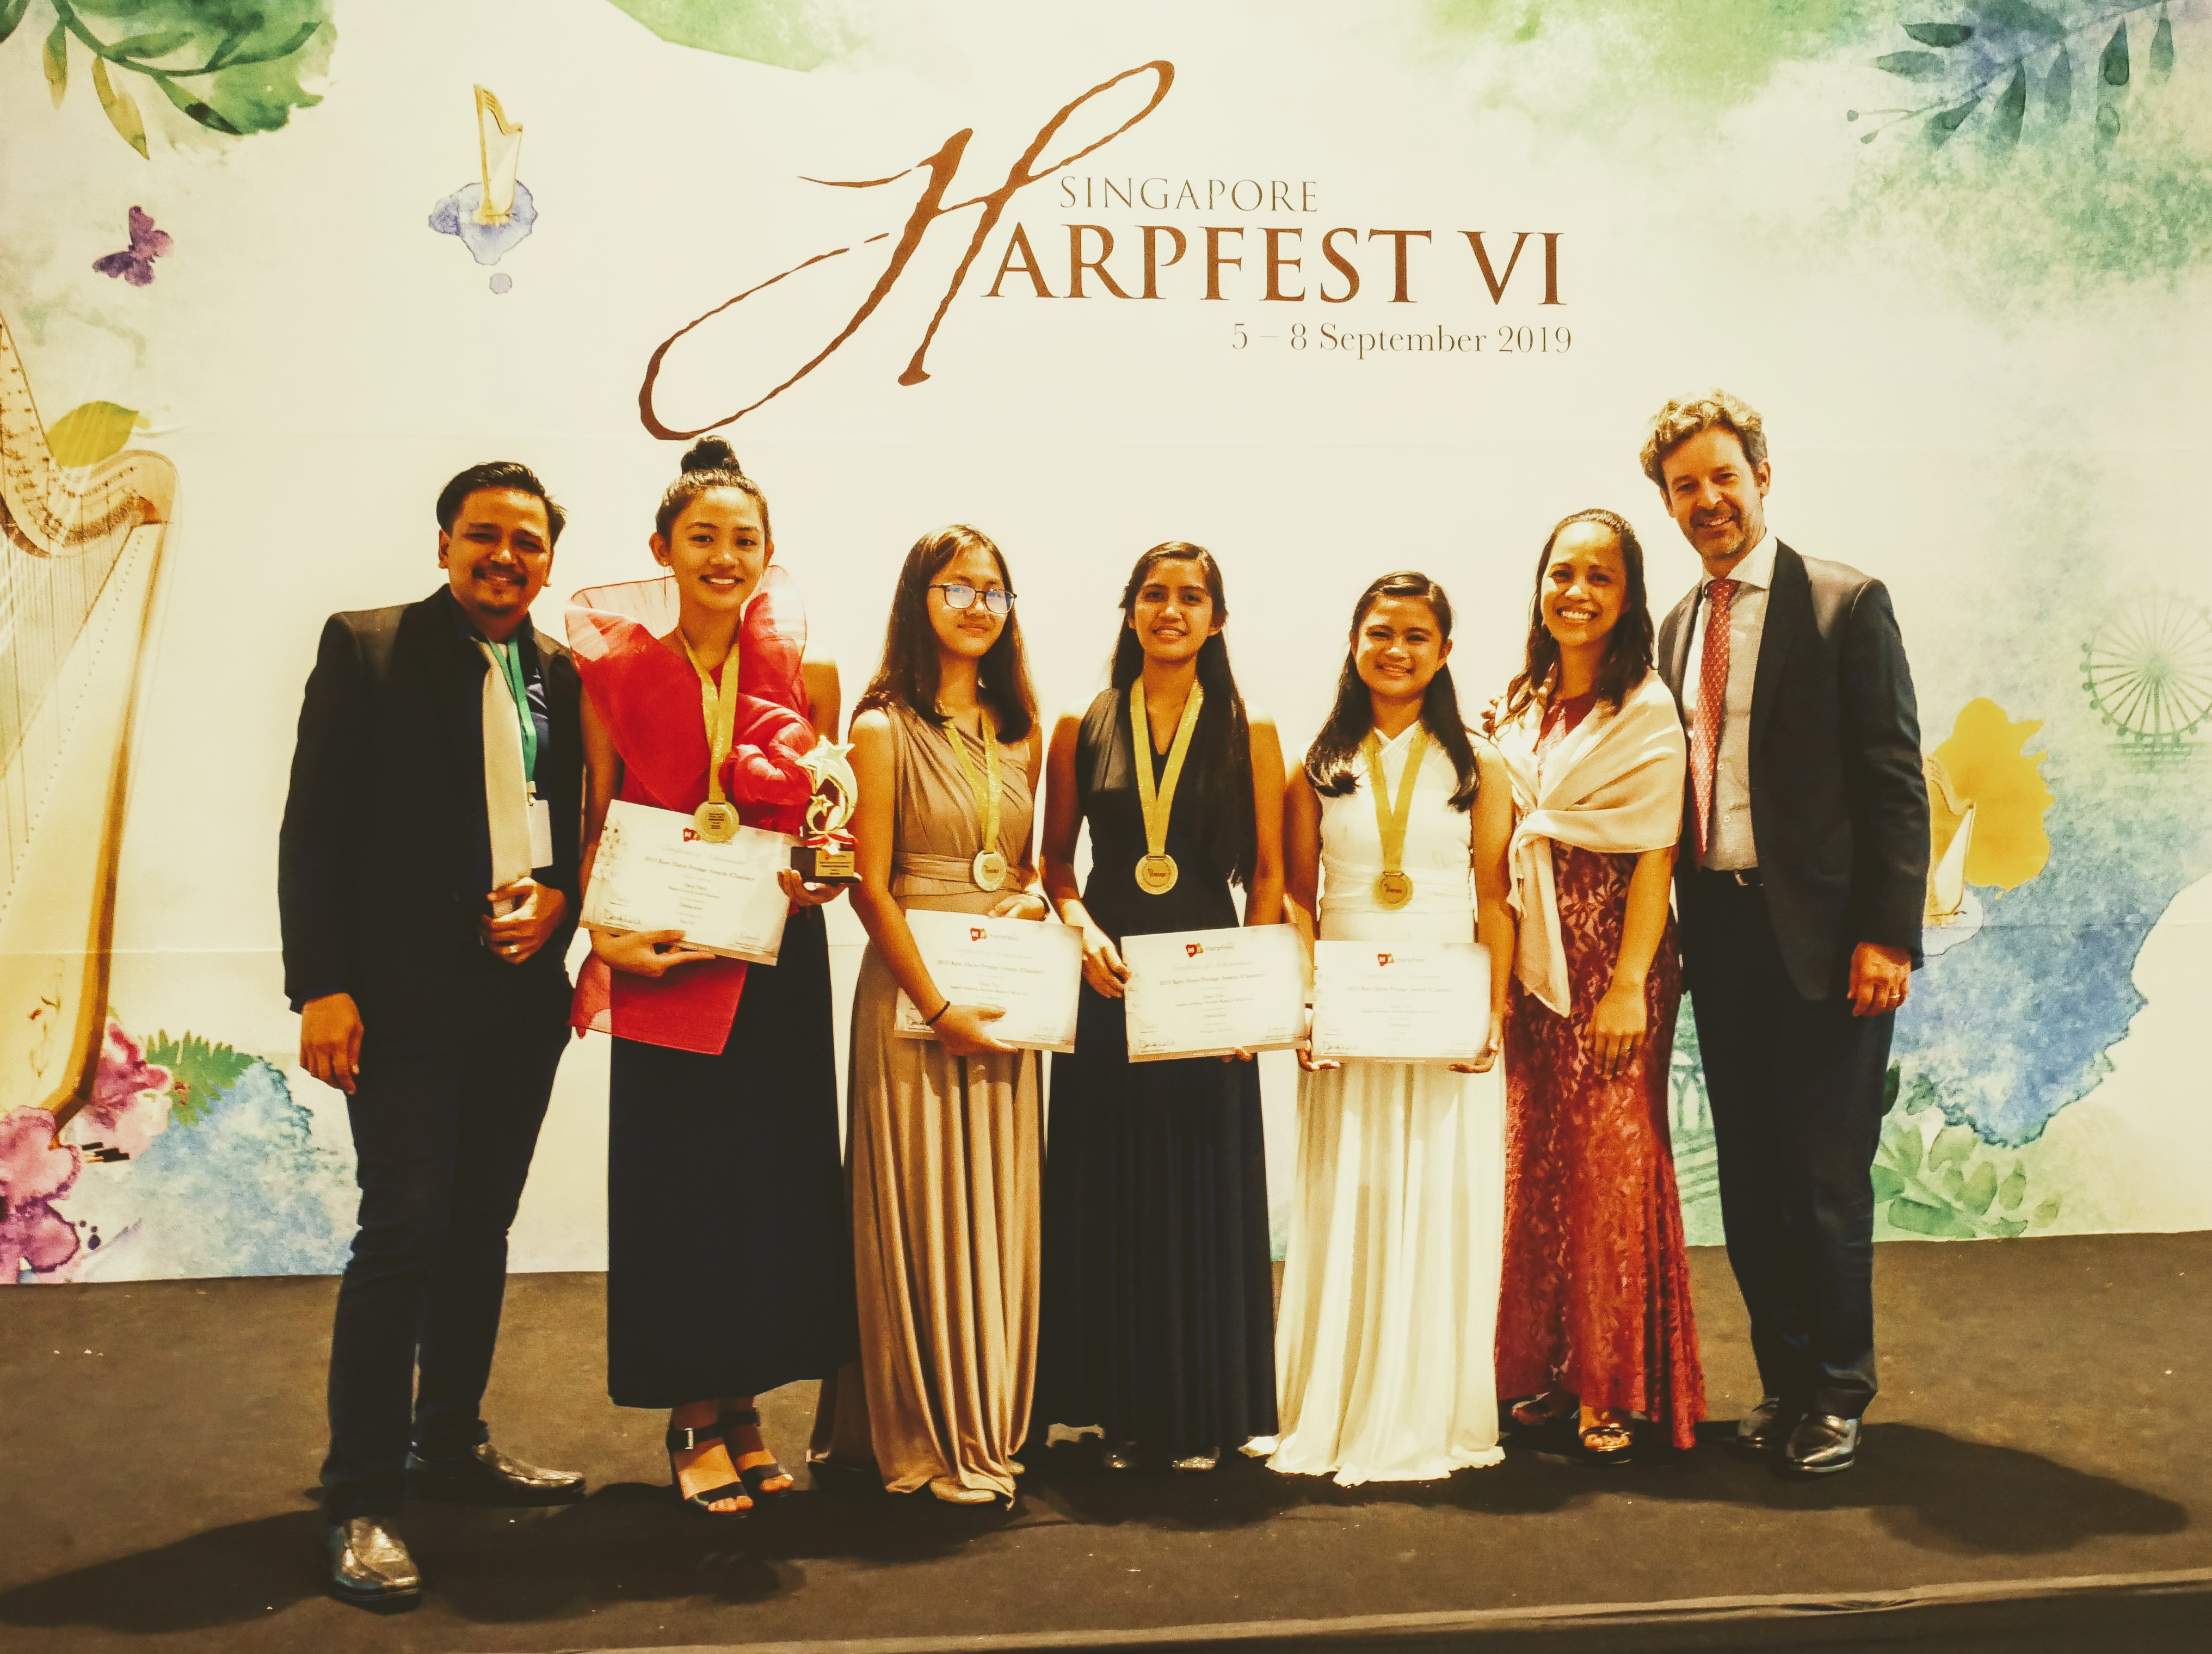 Philippine Harpists Awarded at the 6th Singapore Harpfest